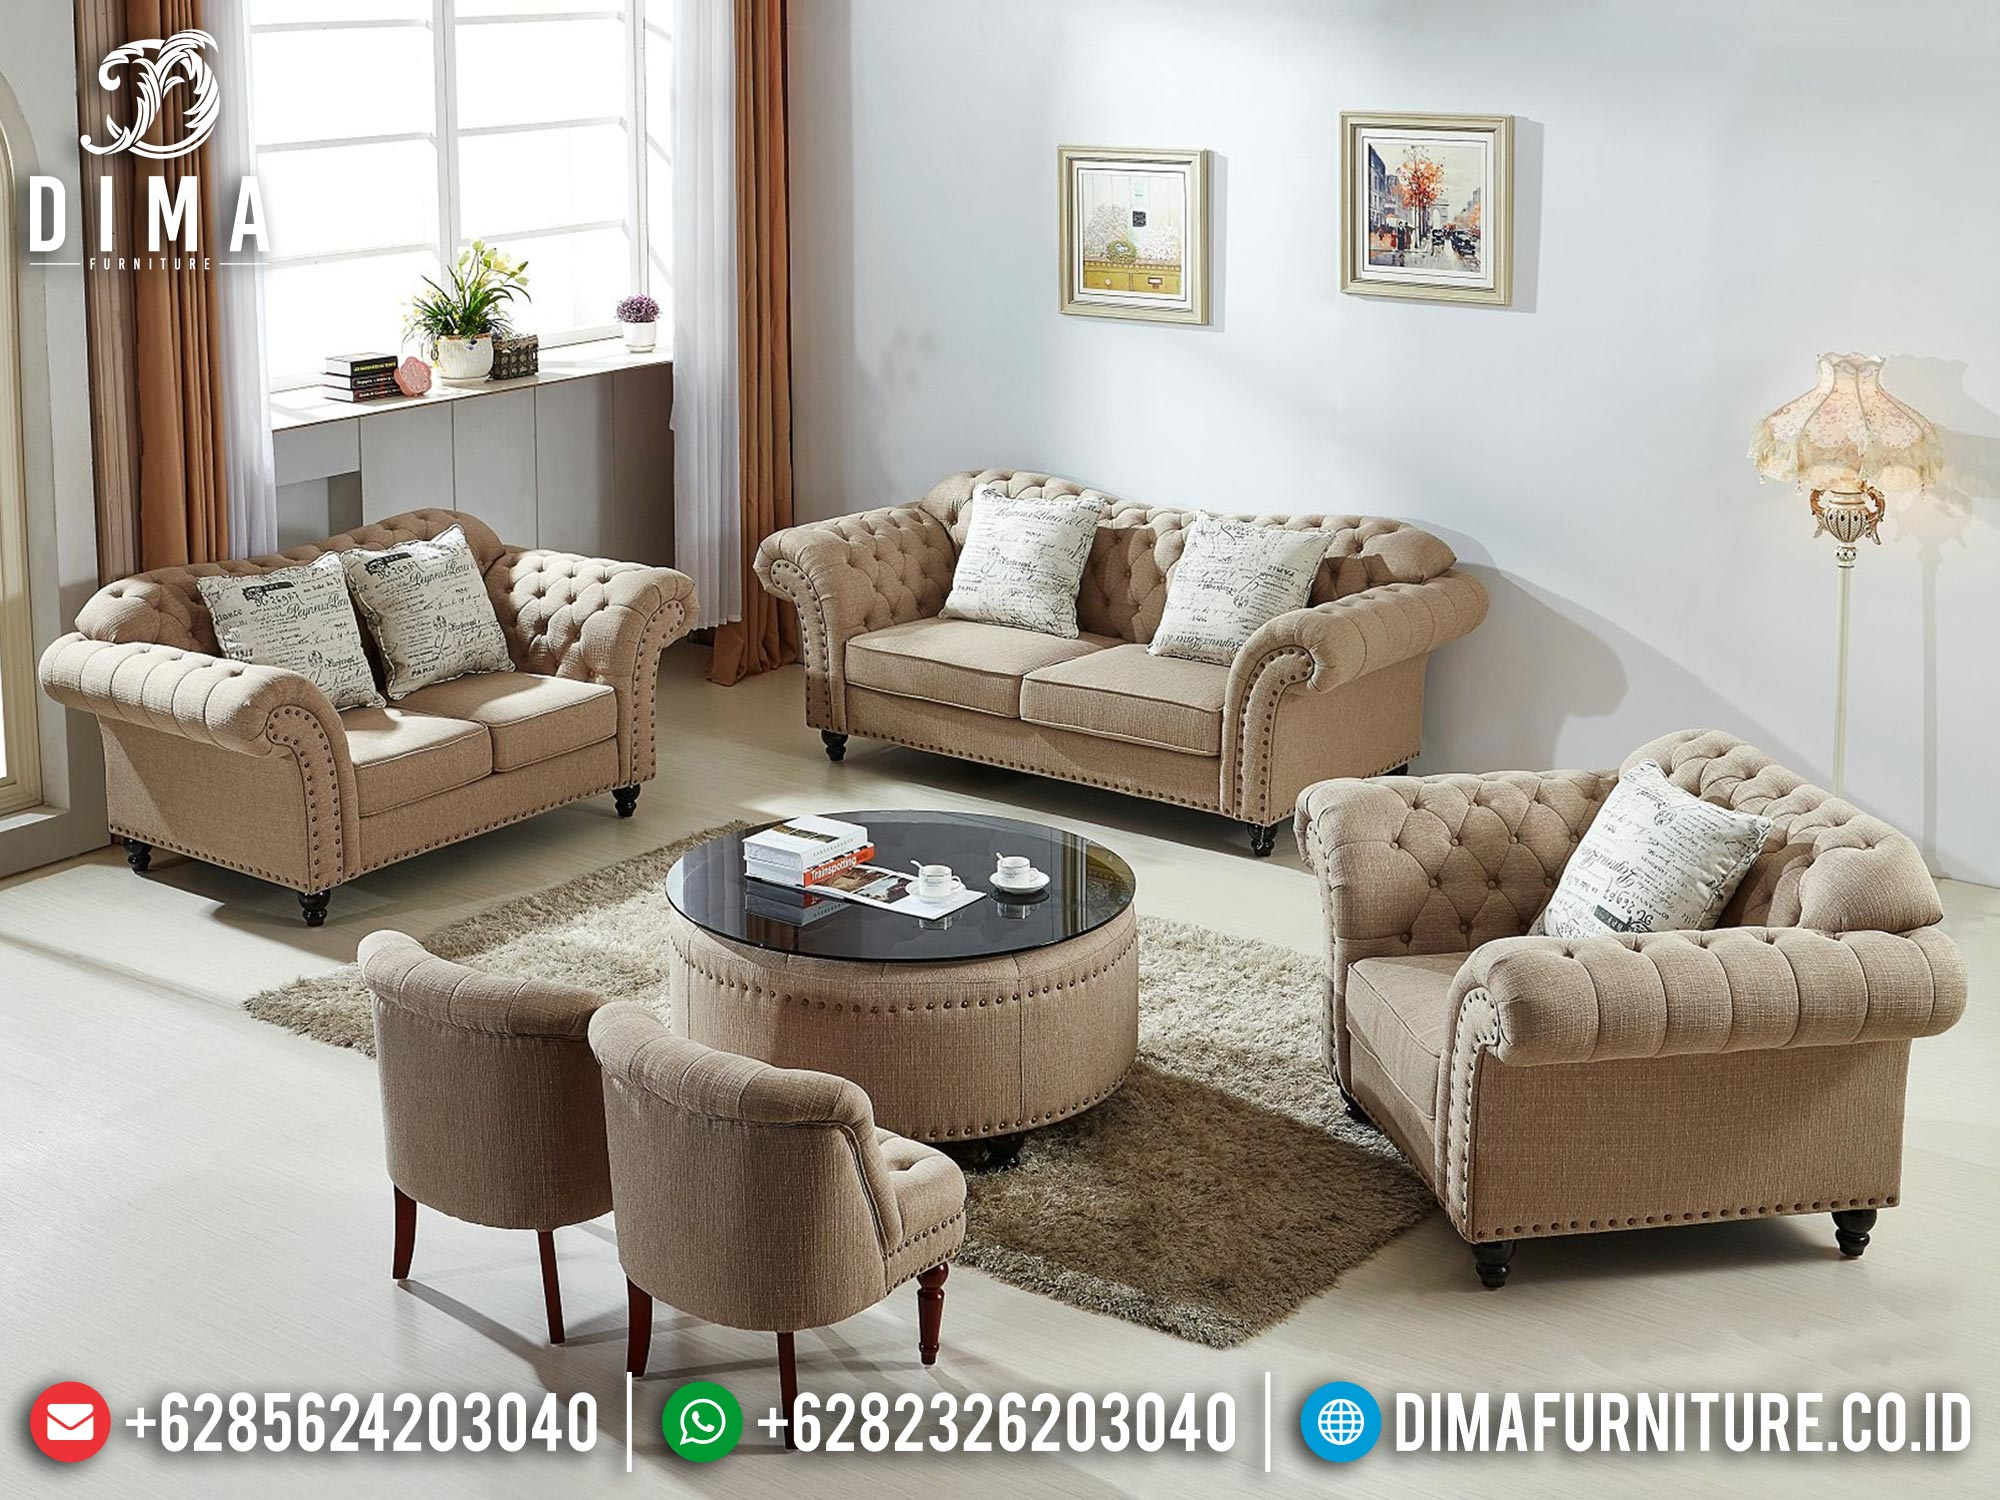 Terbaru!!! Set Sofa Tamu Minimalis Jepara Elegant Fabric Beludru Color Furniture Jepara MM-1094